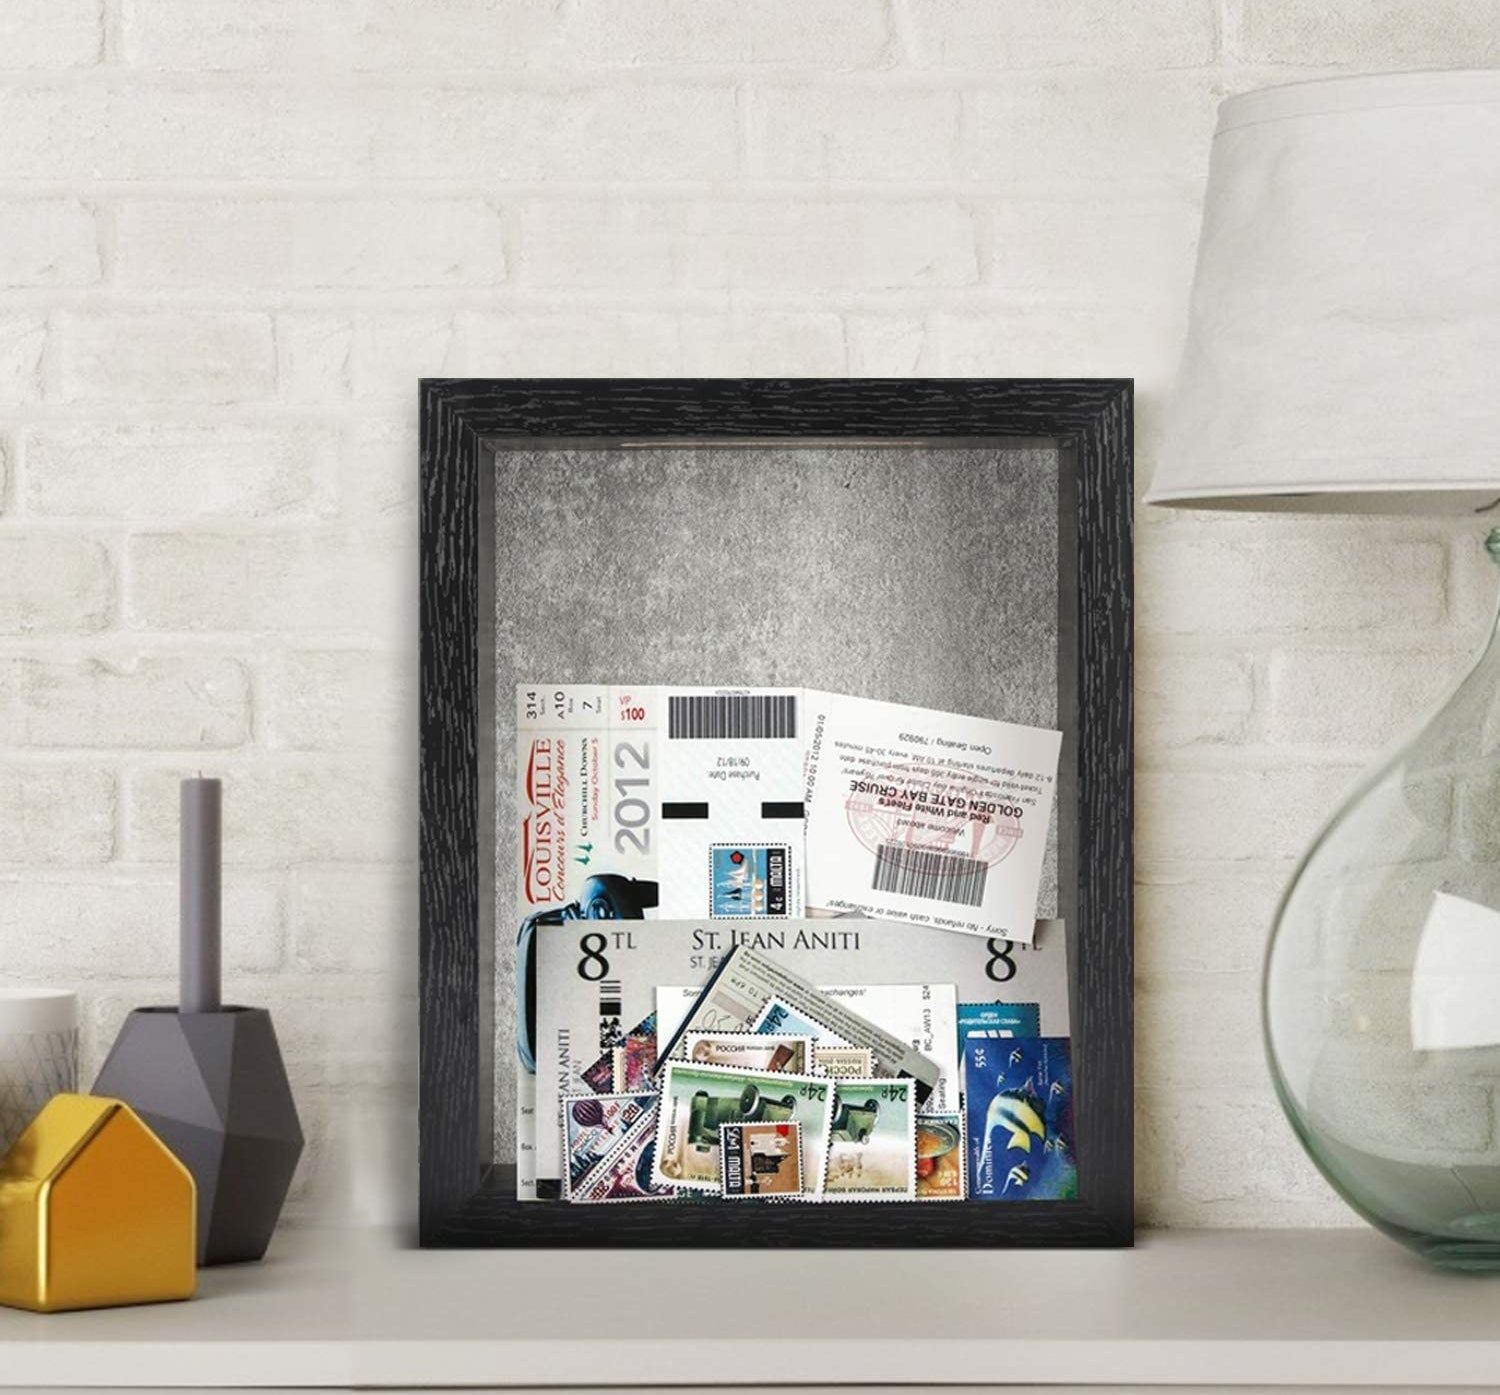 The shadow box perched on a sideboard and filled with ticket stubs and photographs